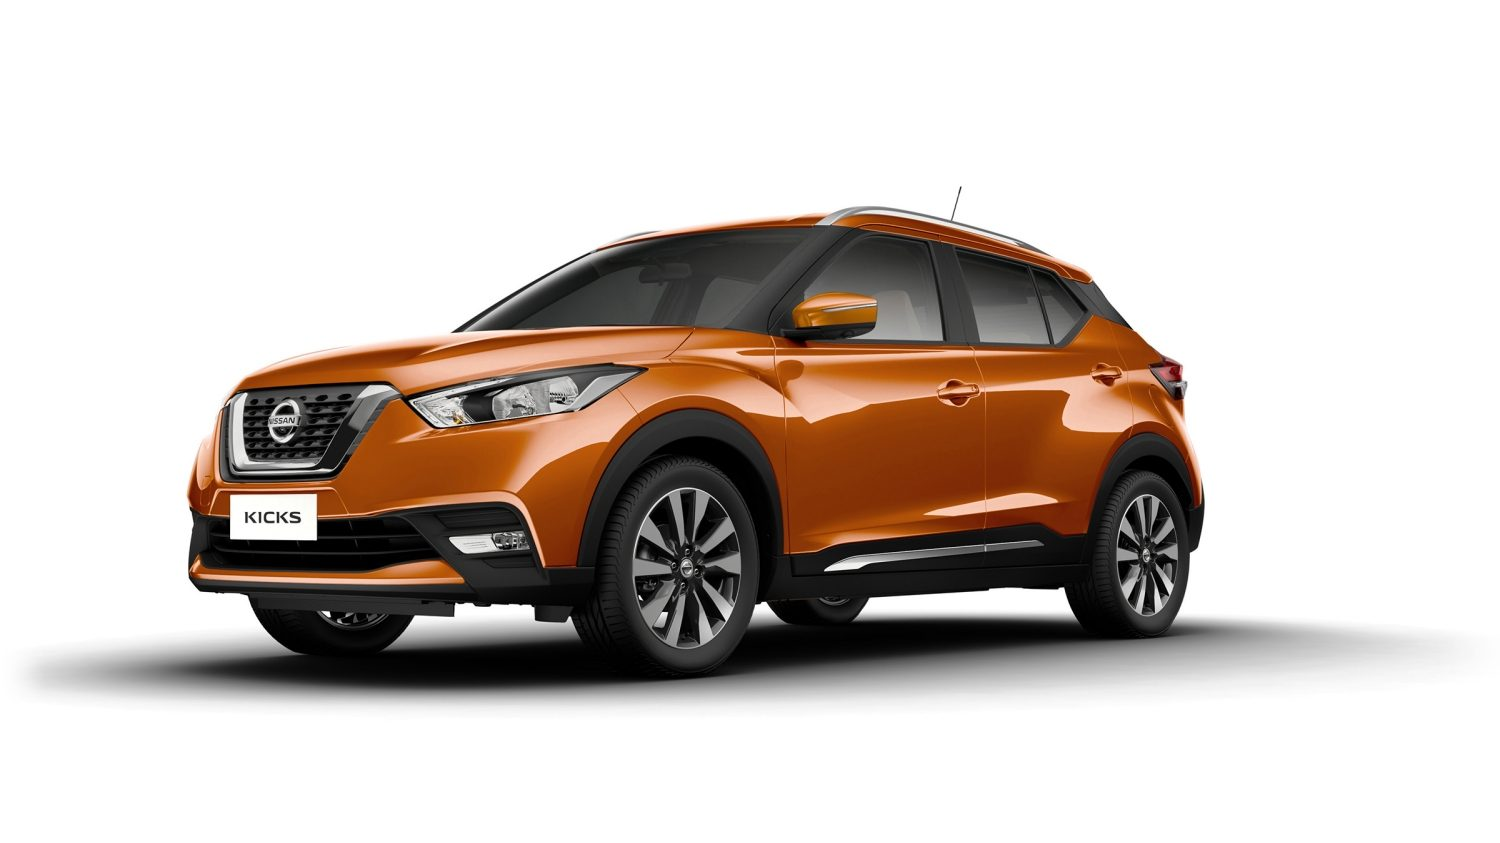 White Nissan Kicks exterior profile